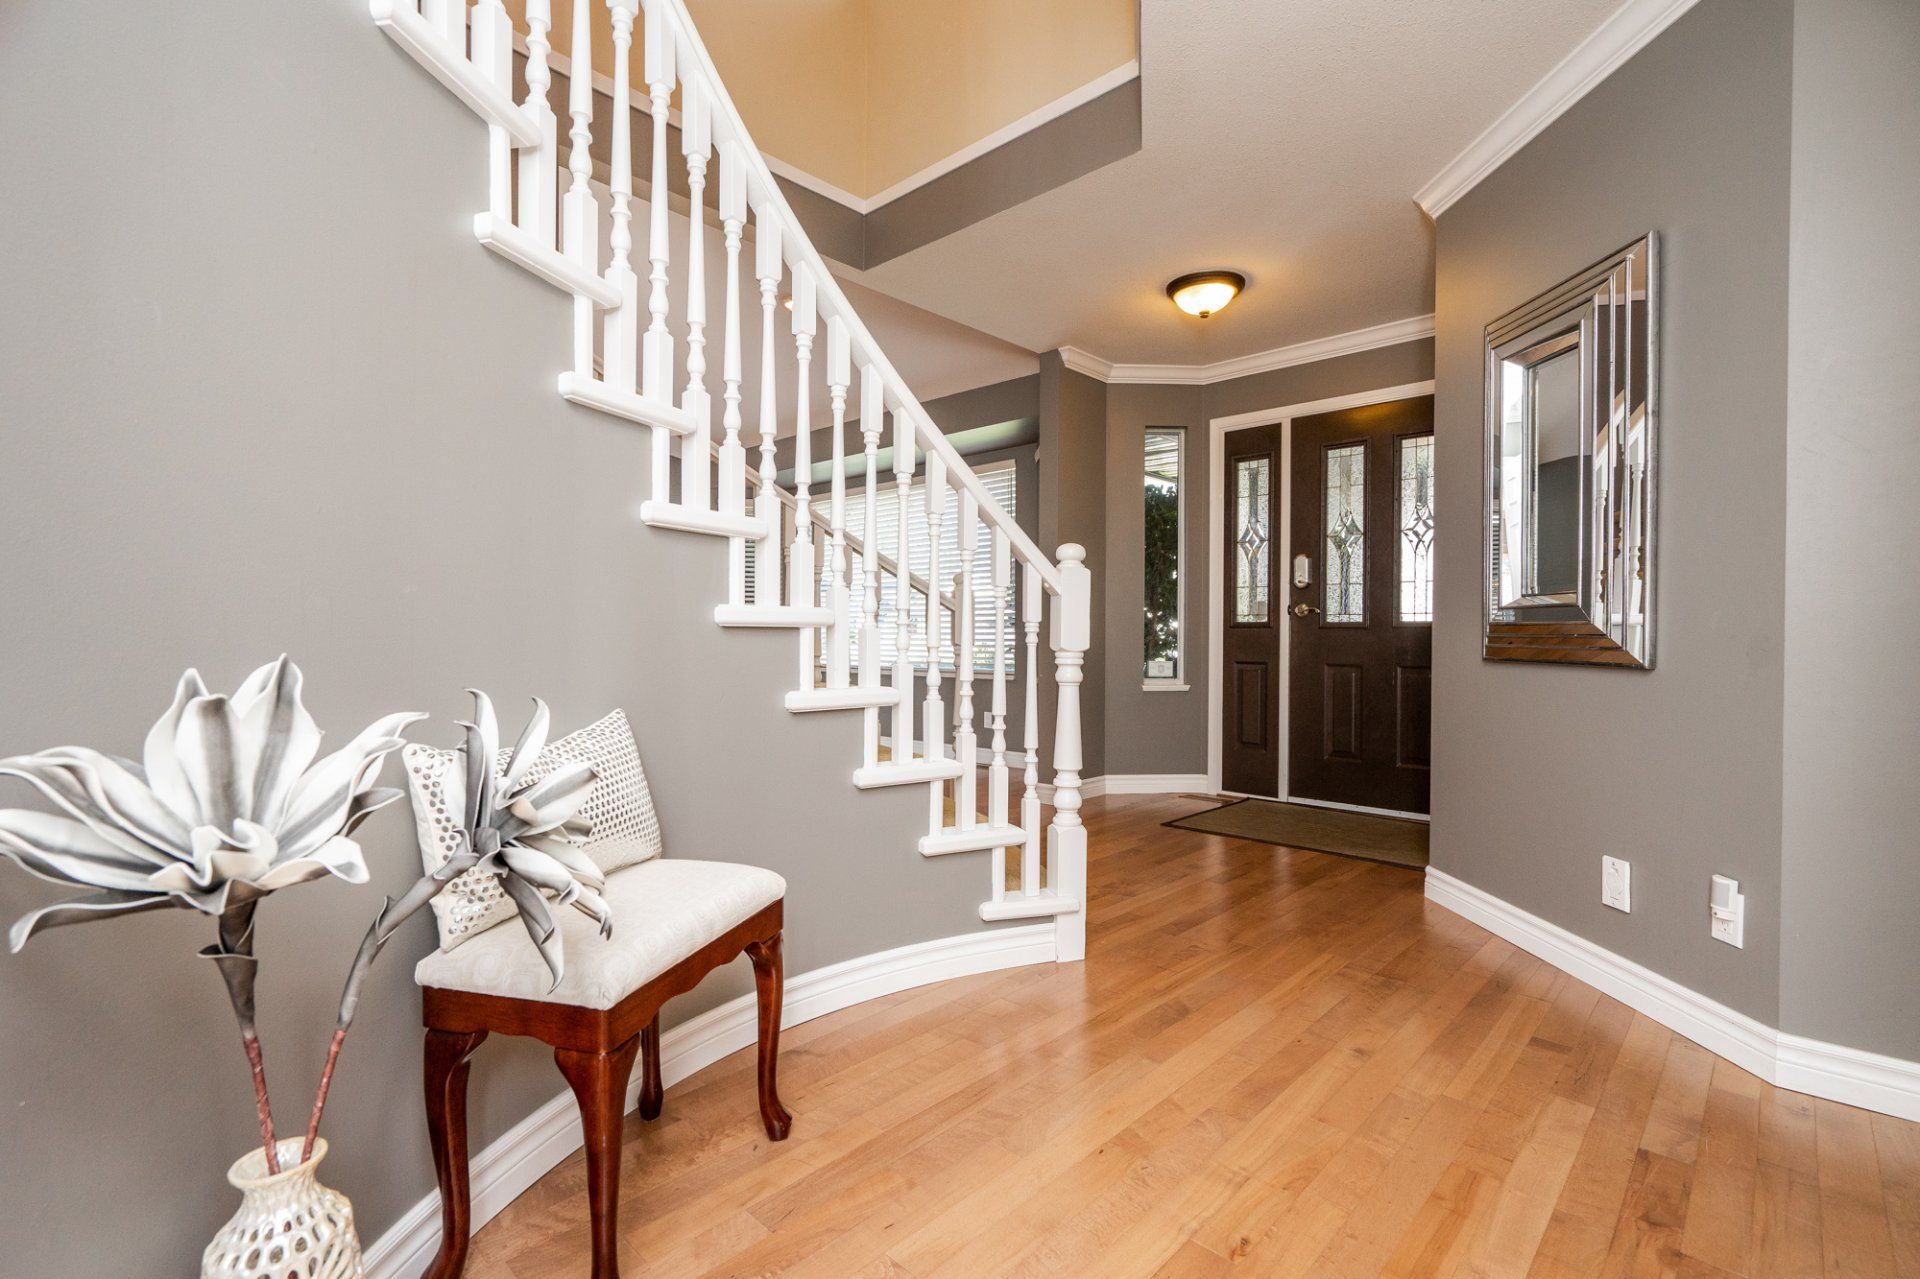 """Photo 19: Photos: 8448 213 Street in Langley: Walnut Grove House for sale in """"Forest Hills"""" : MLS®# R2259409"""